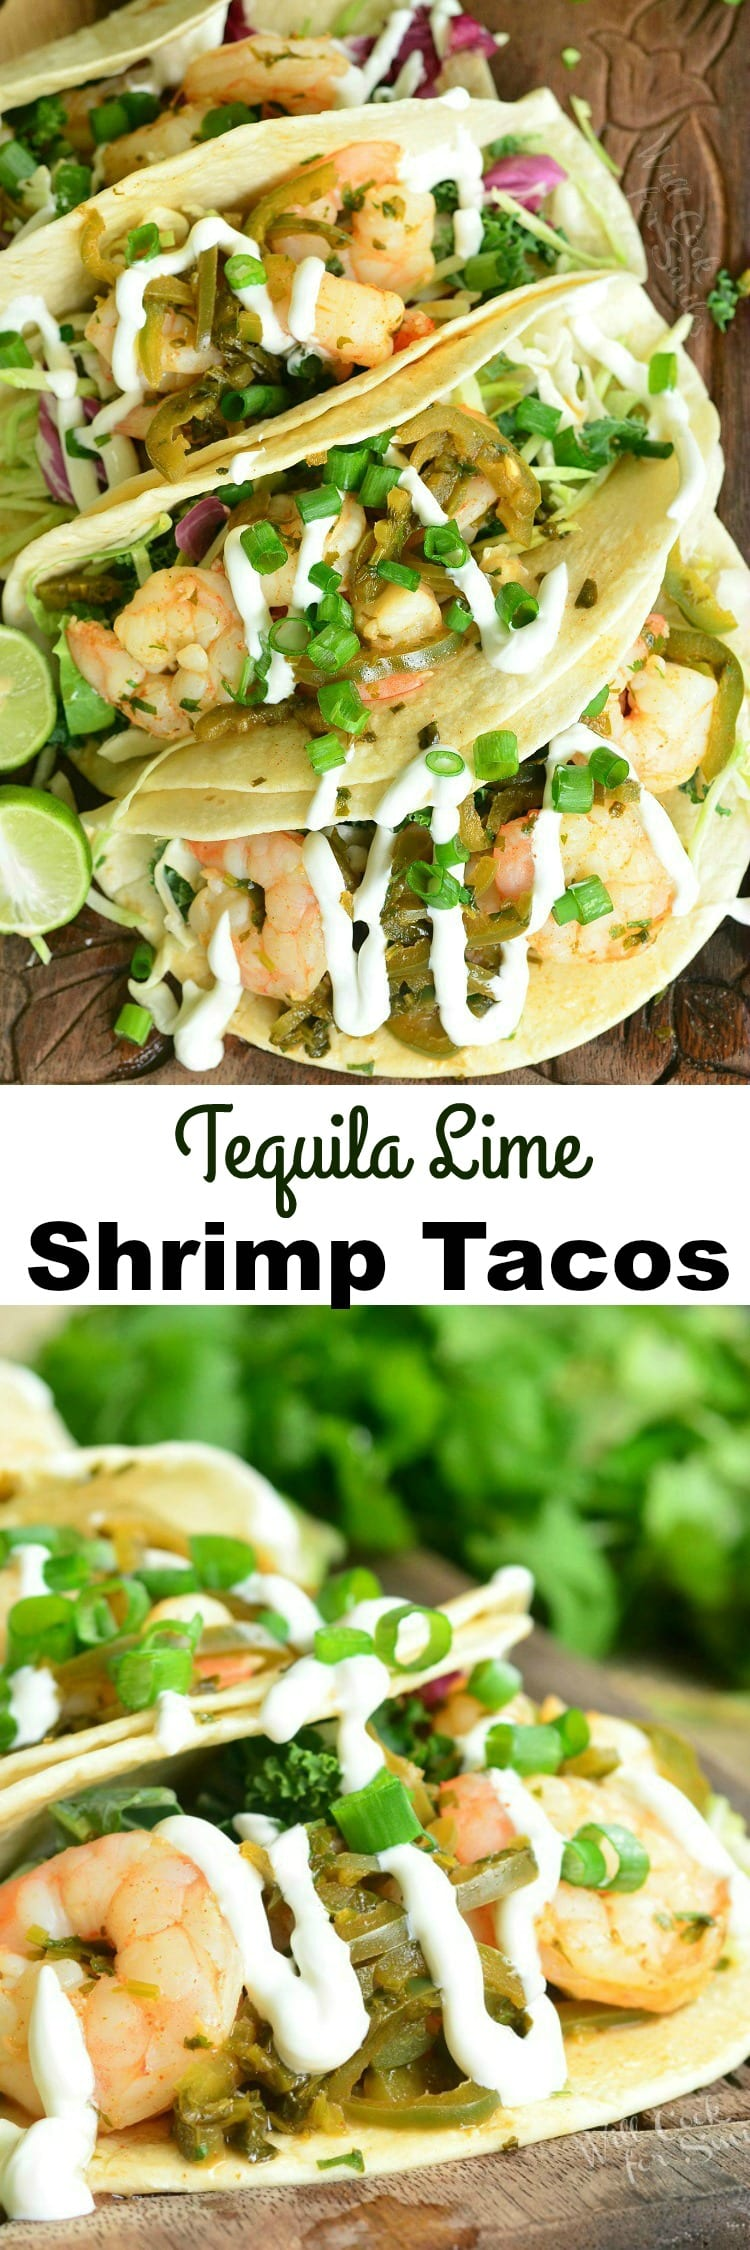 Tequila Lime Shrimp Tacos. Fantastic, light shrimp tacos made in ...